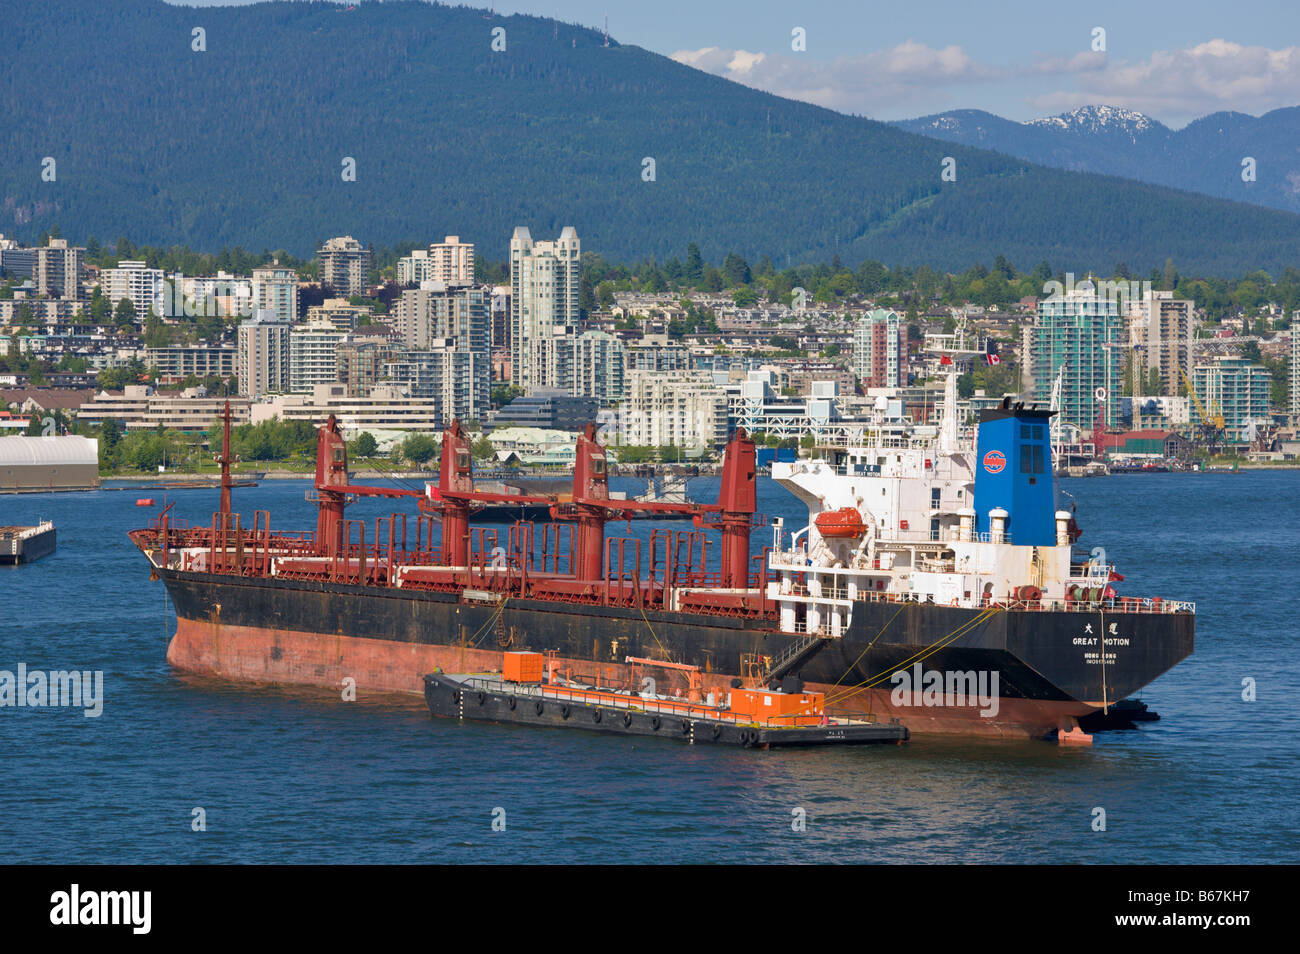 Geared bulk carrier ship in ballast Vancouver 'British Columbia' Canada - Stock Image